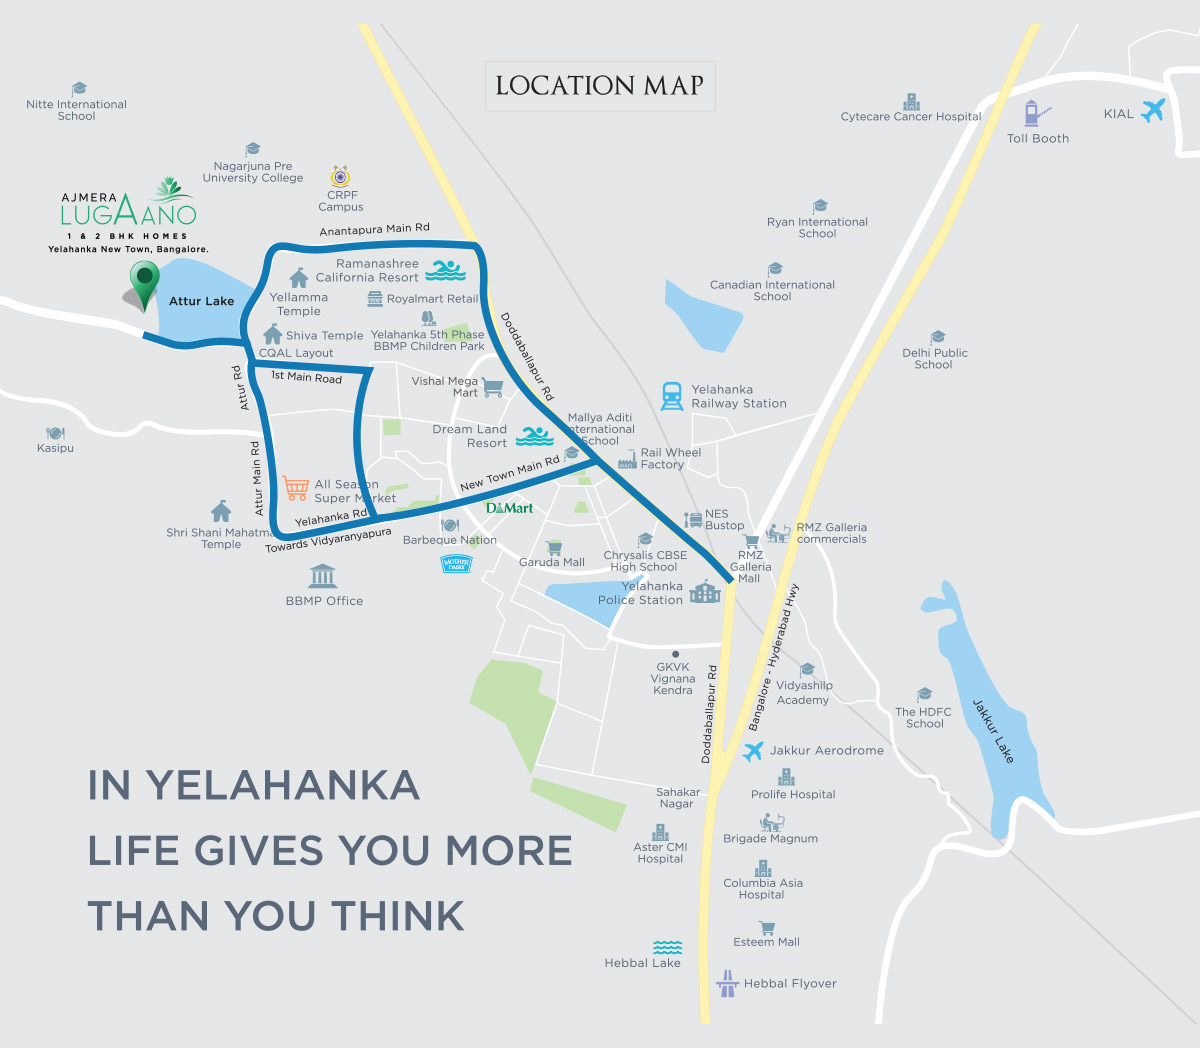 Ajmera Lugaano in Yelahanka - Map